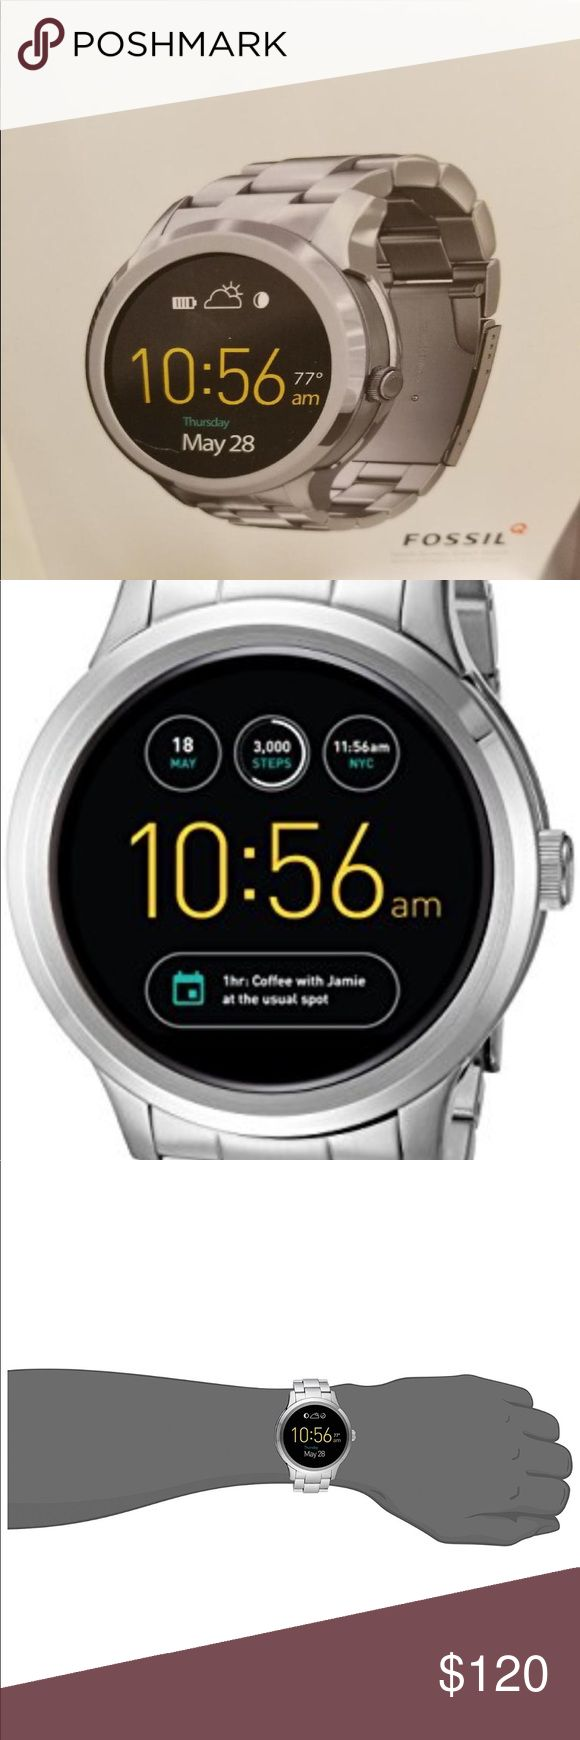 Fossil Q Founder Gen 1 smart watch silver This best of both worlds digital display smart watch, tracks activityconnects seamlessly to your phone.round 46 mm case in refined stainless steel featuring a digital display dial Compatible with all Fossil brand 22mm straps and features customizable faces to fit your style Compatible with Android Devices 4.4+ and iOS 8.2+ / iPhone 5+ Receive display notifications like email, phone calls and texts, and social media notifications and connect to your…